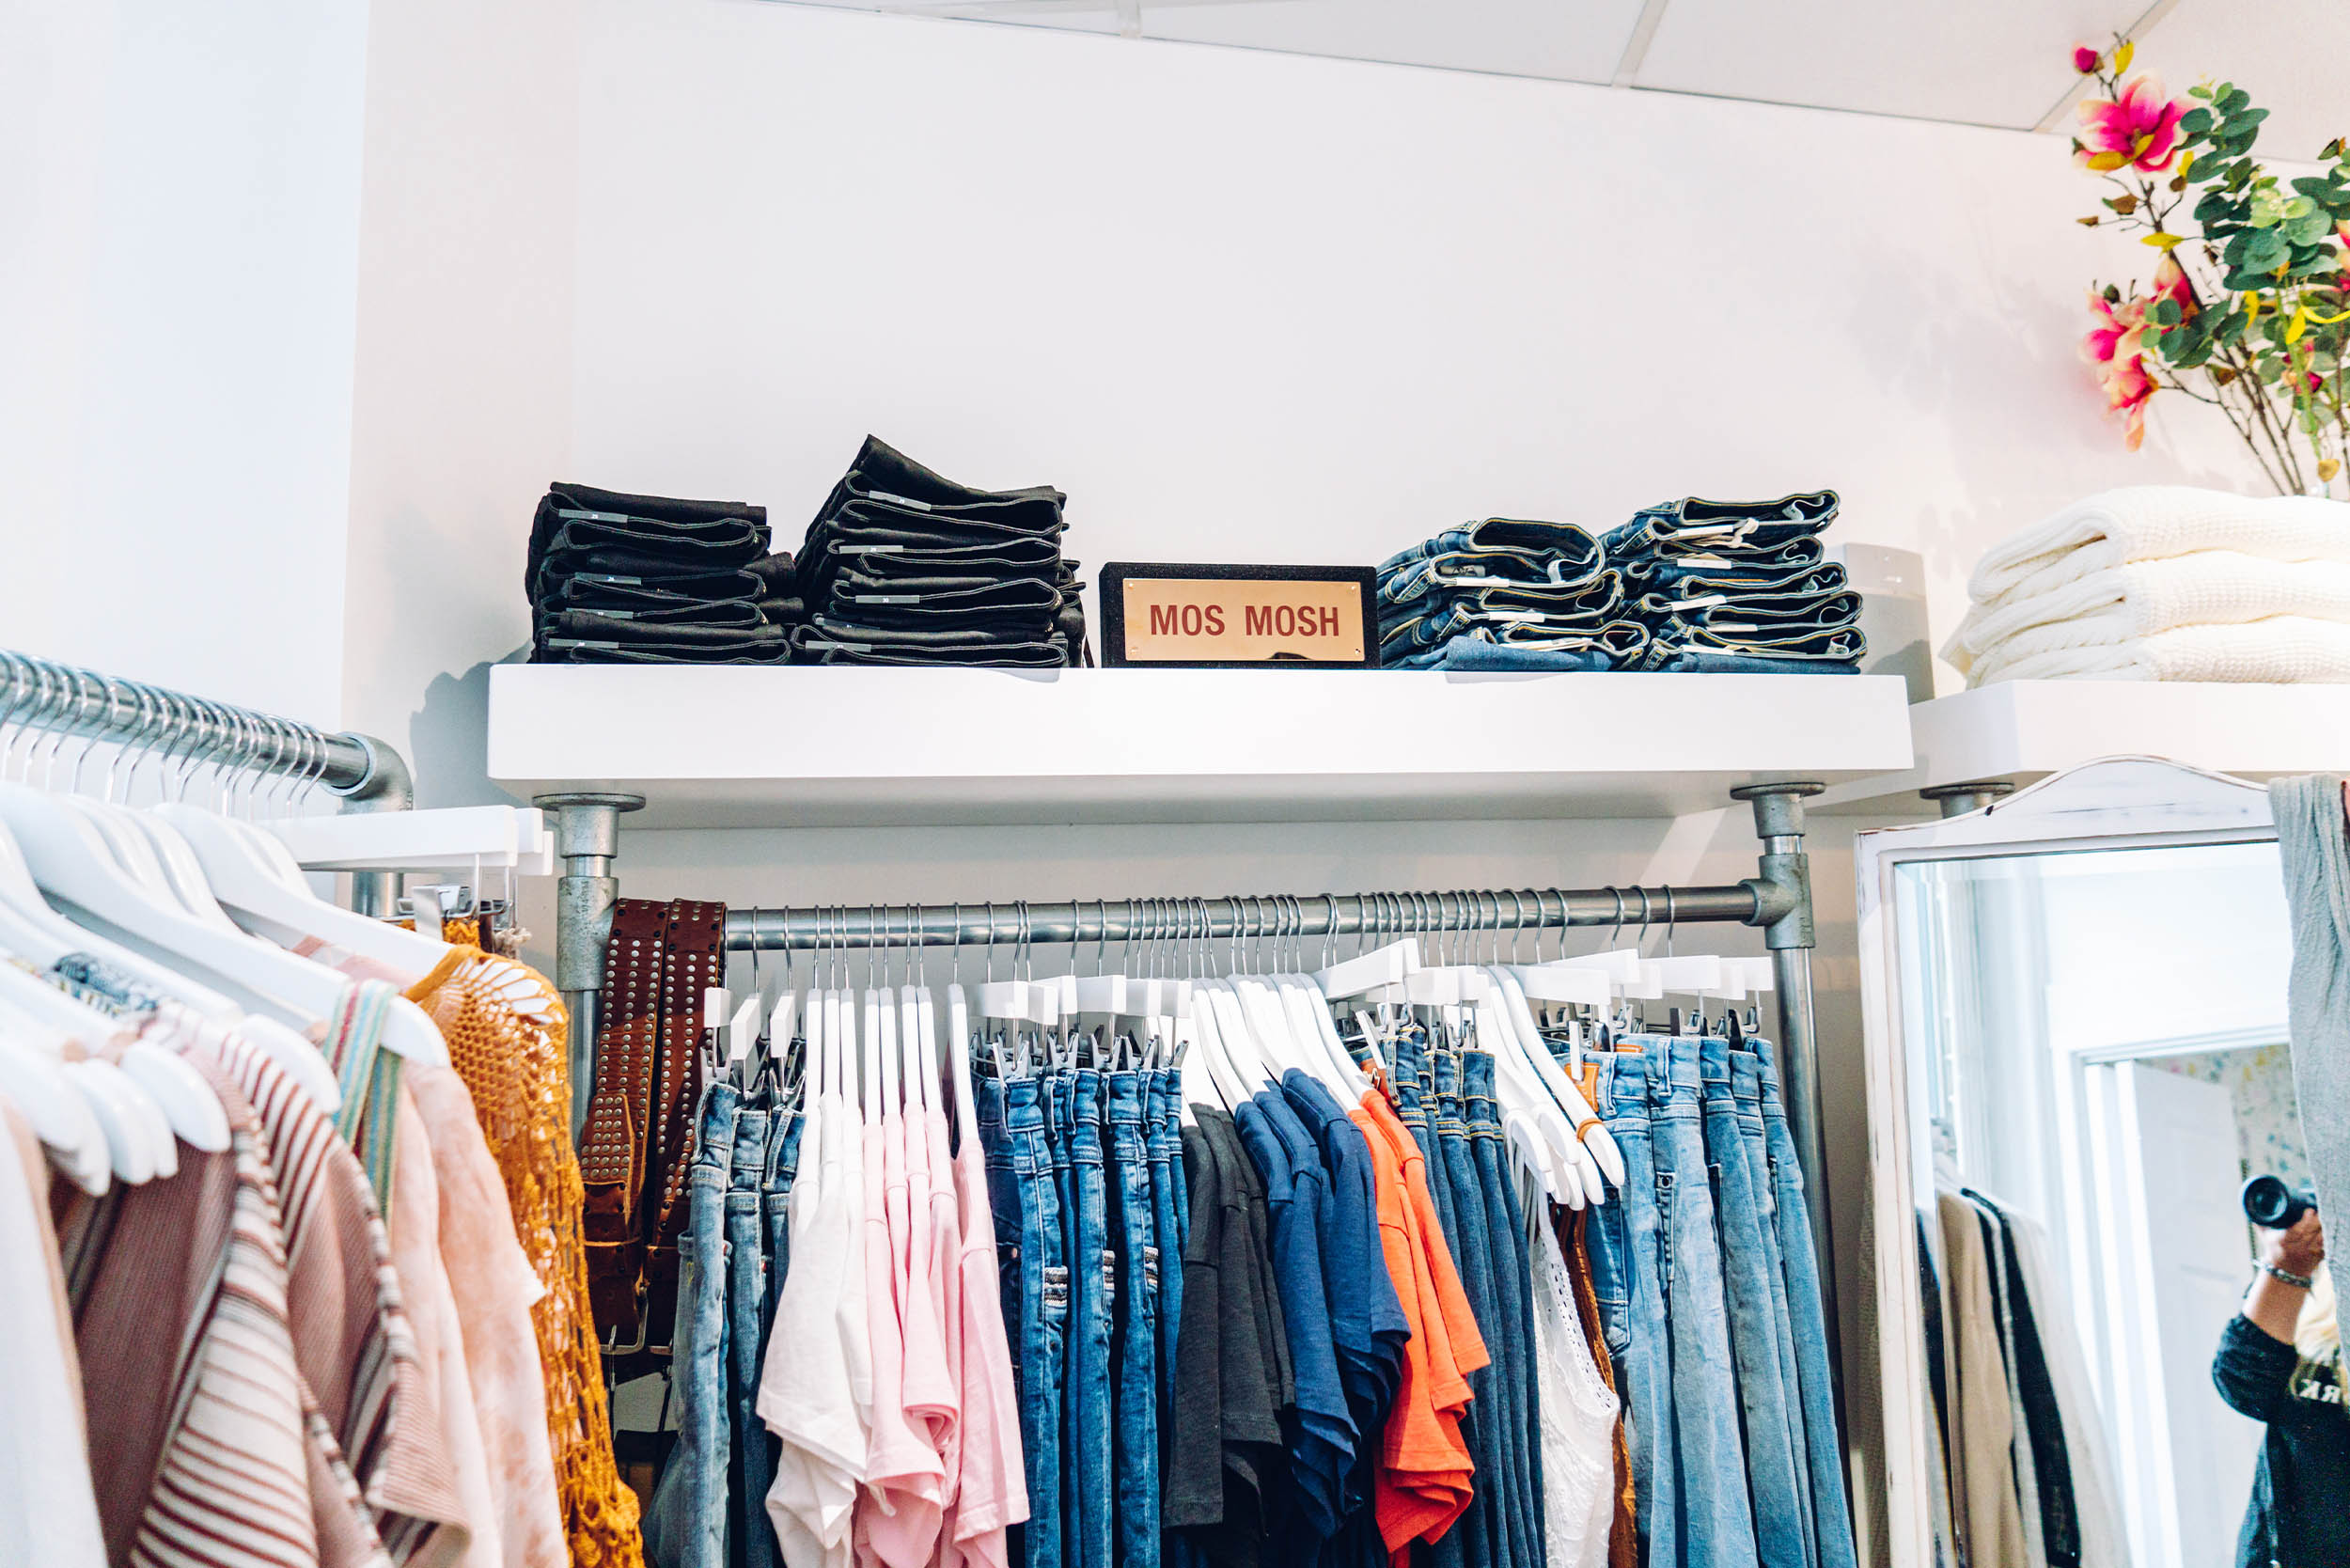 Wildflower Style Boutique - Mos Mosh Jeans - Colchester, Essex.jpg